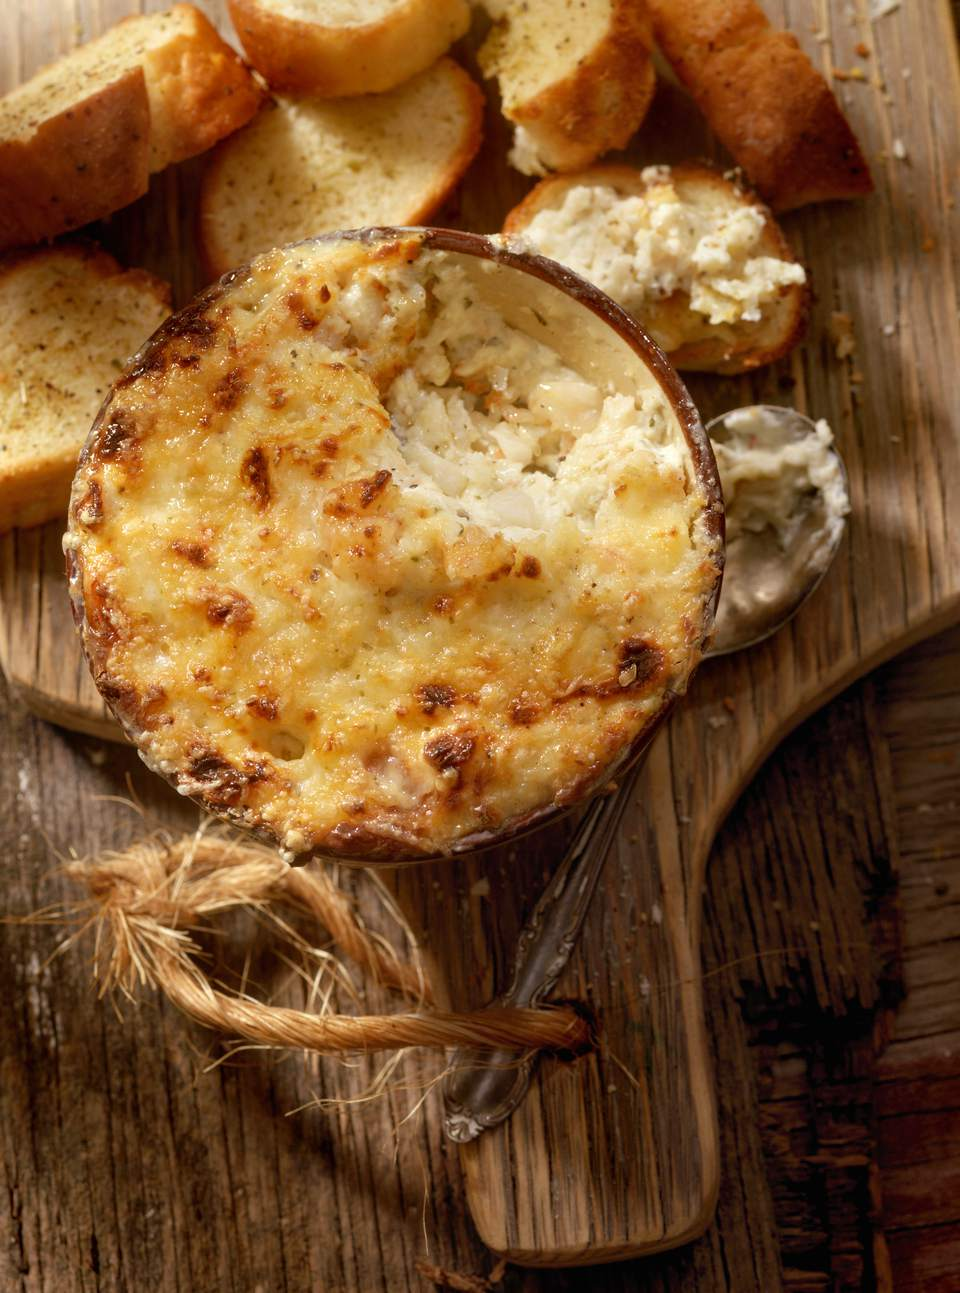 Baked Hot Seafood Dip With Bread